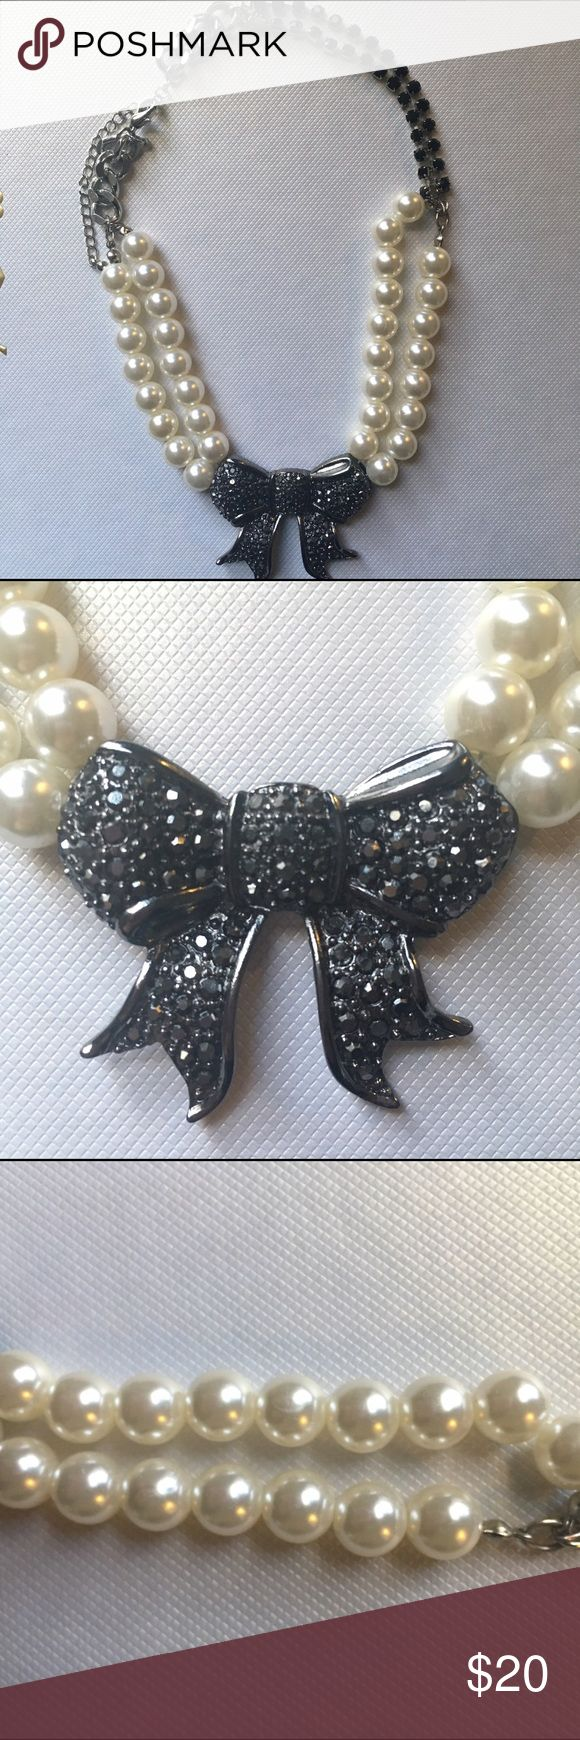 """Pearl necklace with rhinestone bow Adjustable pearl necklace with black rhinestone bow. The back has a clasp with adjustable 3"""" of length. The style of the necklace is short . The 1st pic is the shortest length. Very last picture is the longest length. Shortest length w/out clasp: 15"""" Longest length w/out clasp: 18"""" Express Jewelry Necklaces"""